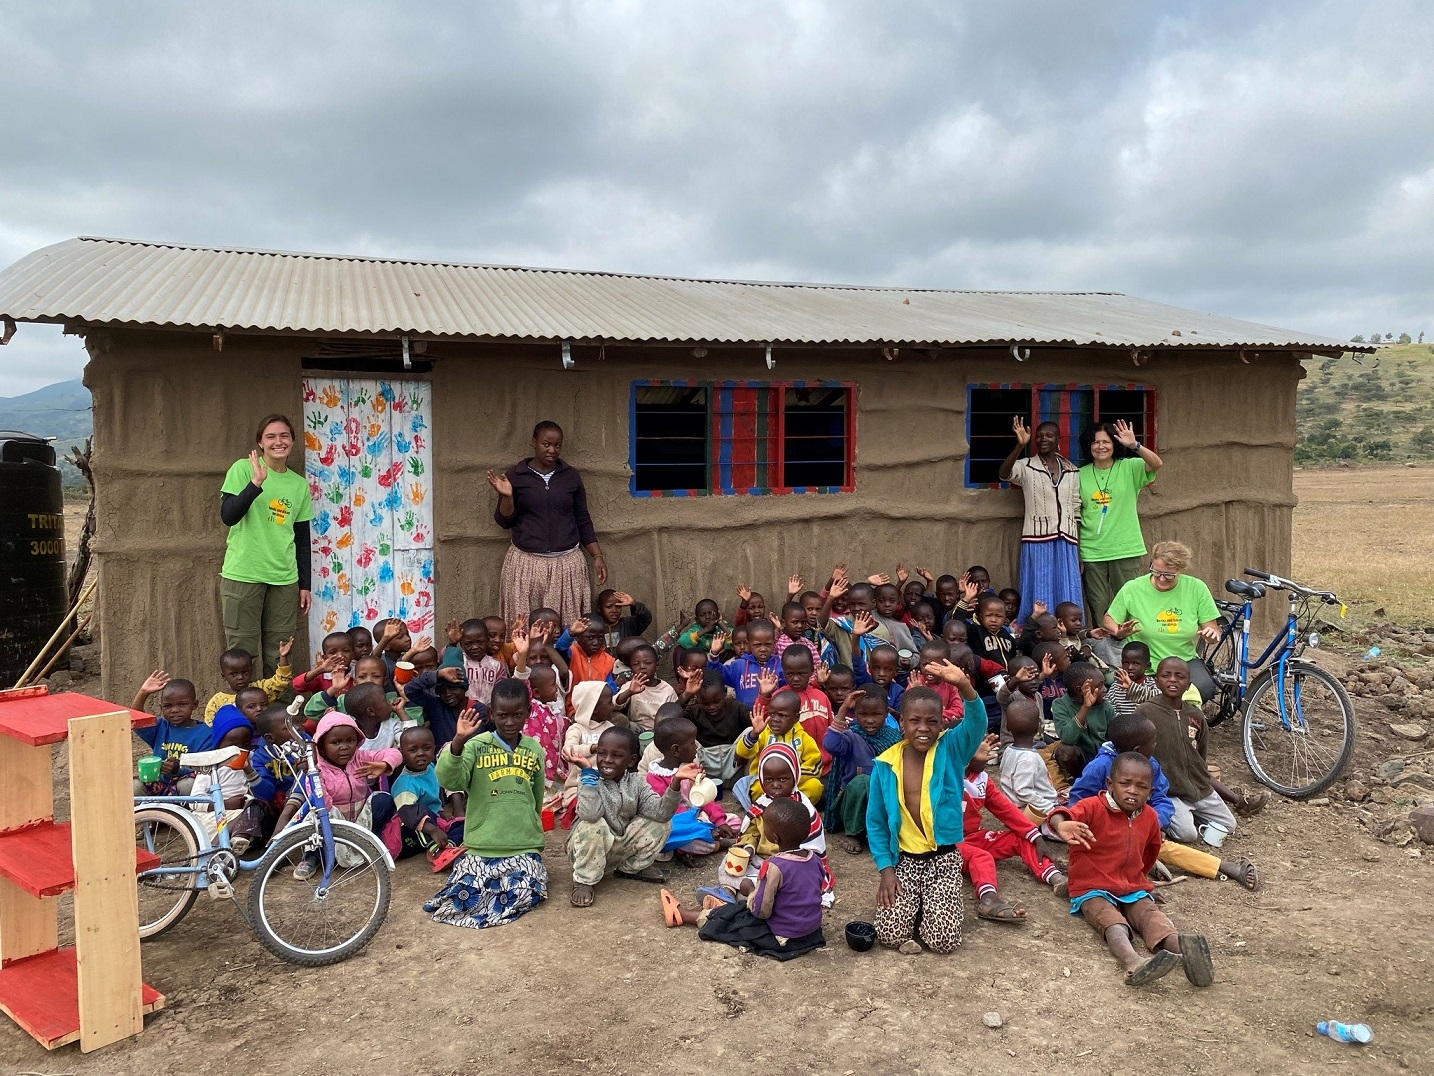 The group outside their schoolhouse after decorating the door and window frames.